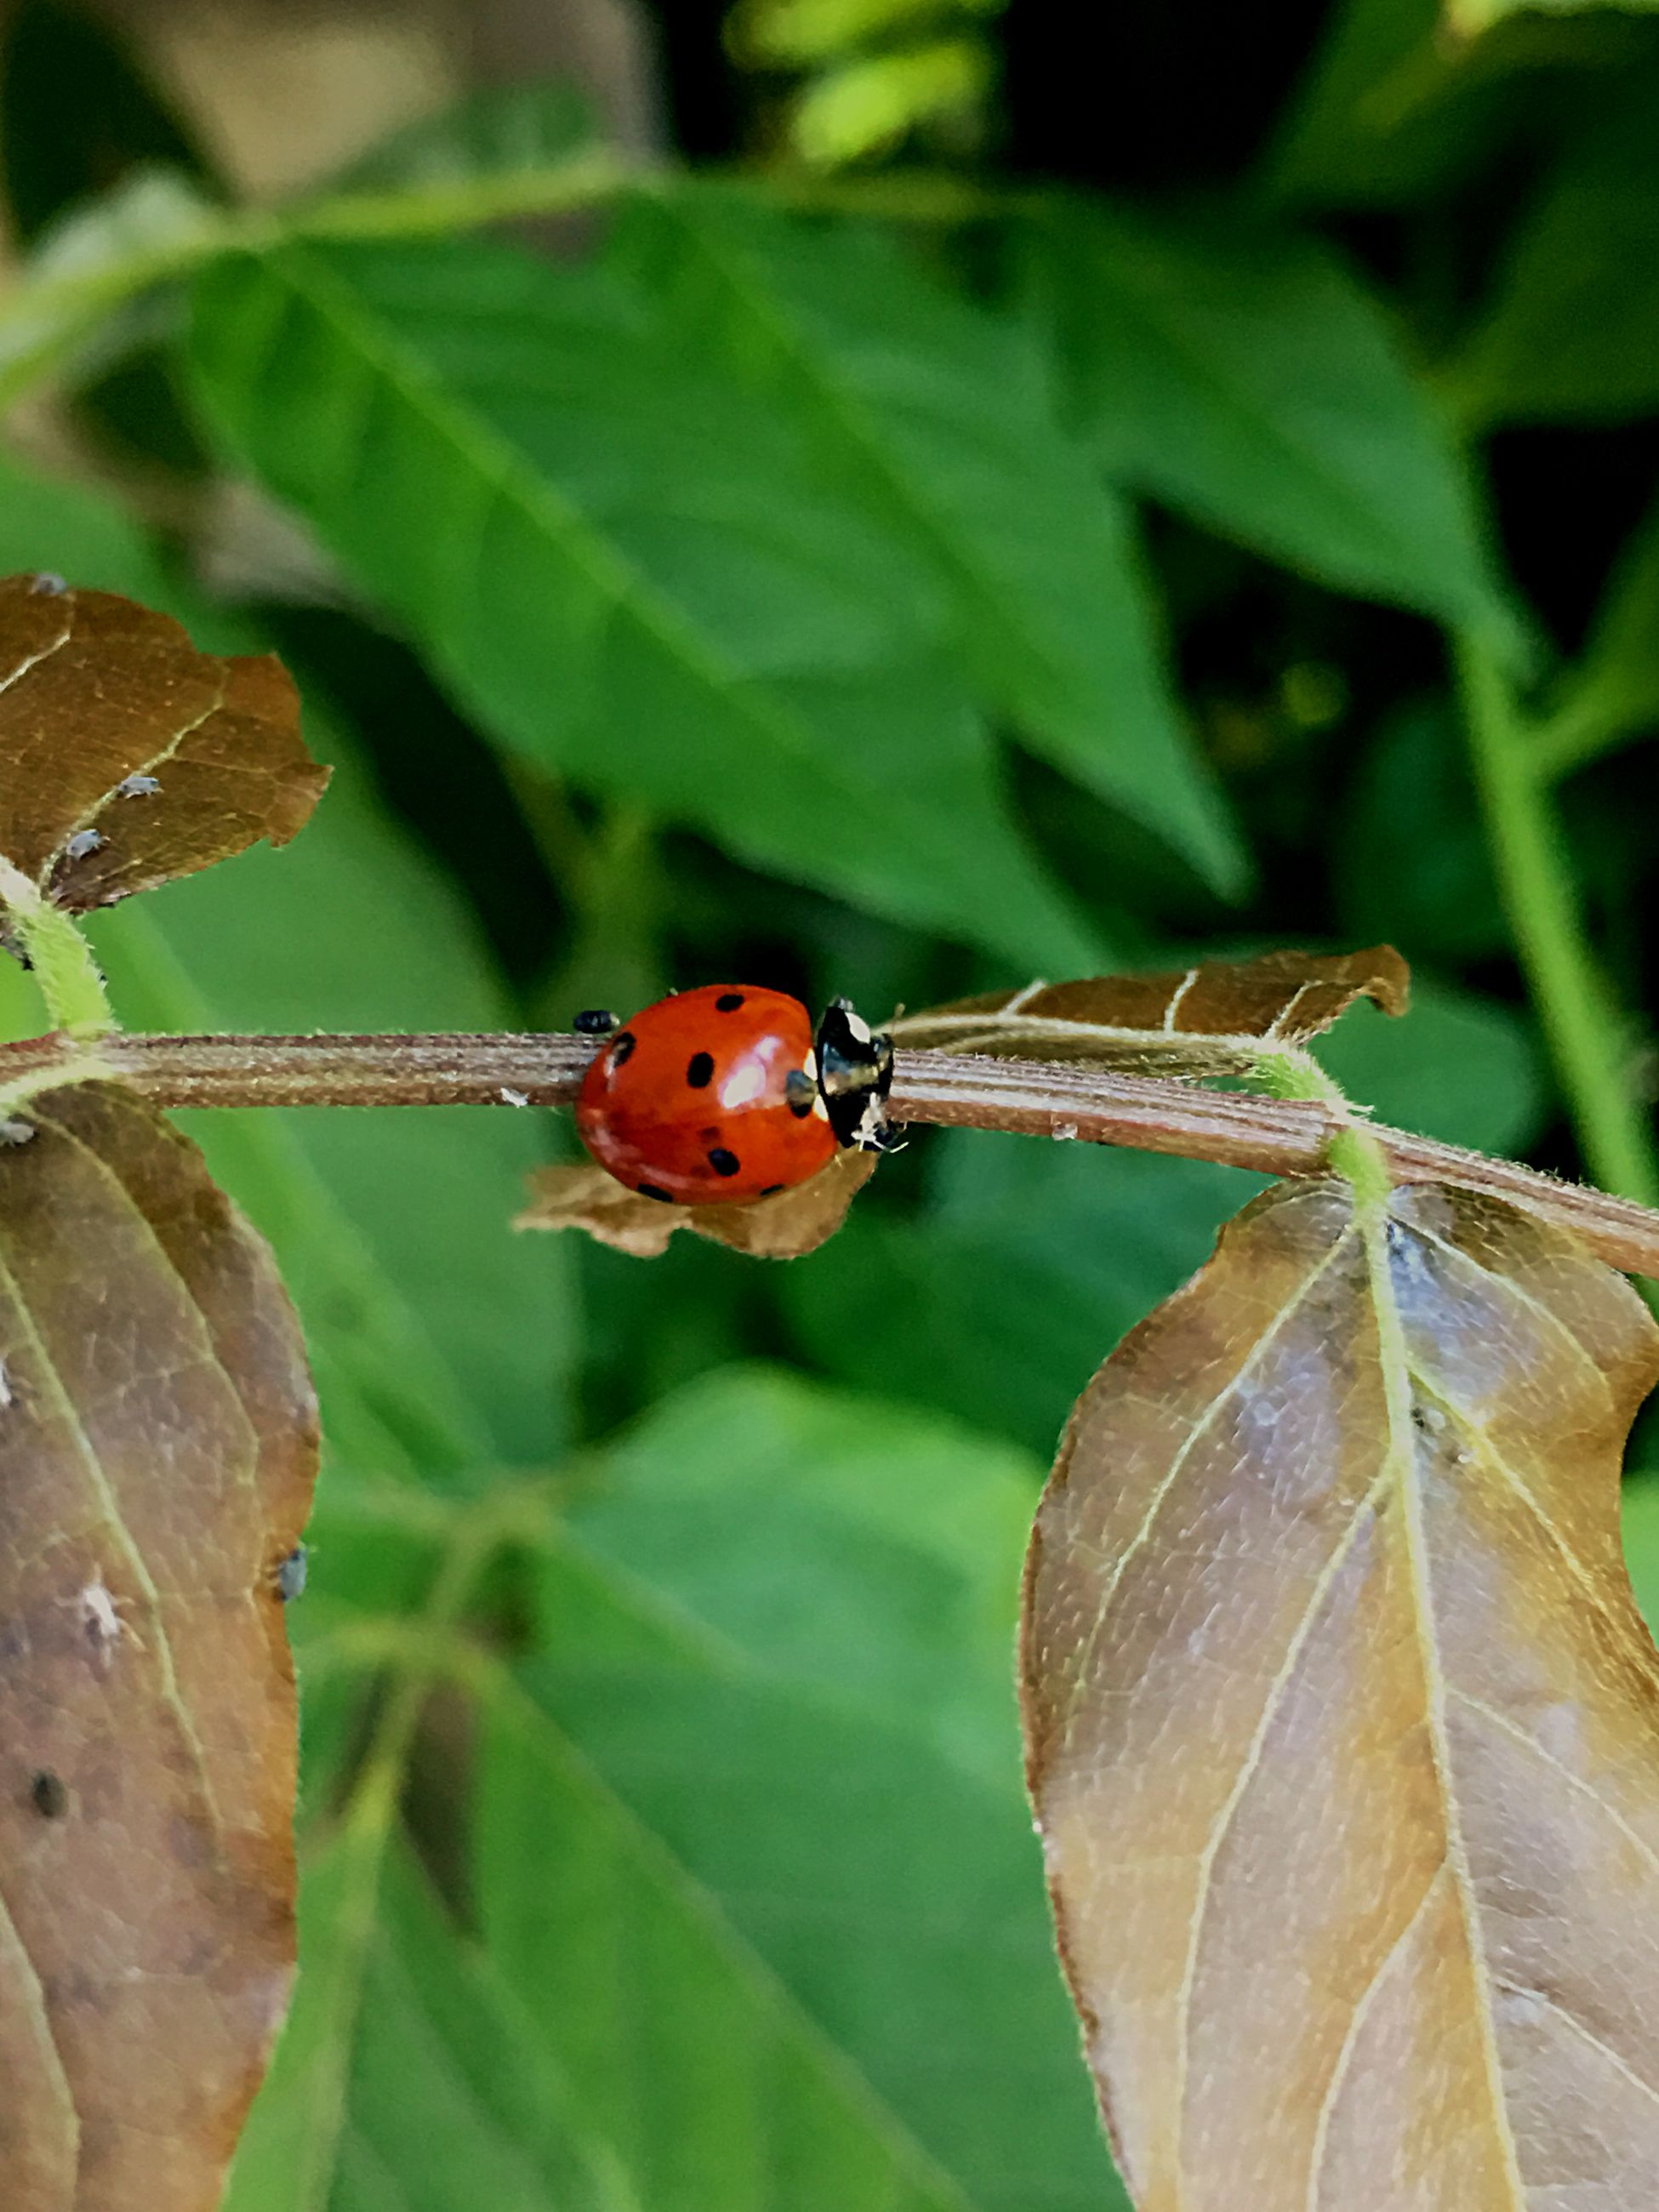 invertebrate, insect, plant part, leaf, animal wildlife, animals in the wild, animal themes, ladybug, close-up, animal, beetle, one animal, plant, nature, focus on foreground, green color, no people, day, spotted, red, outdoors, small